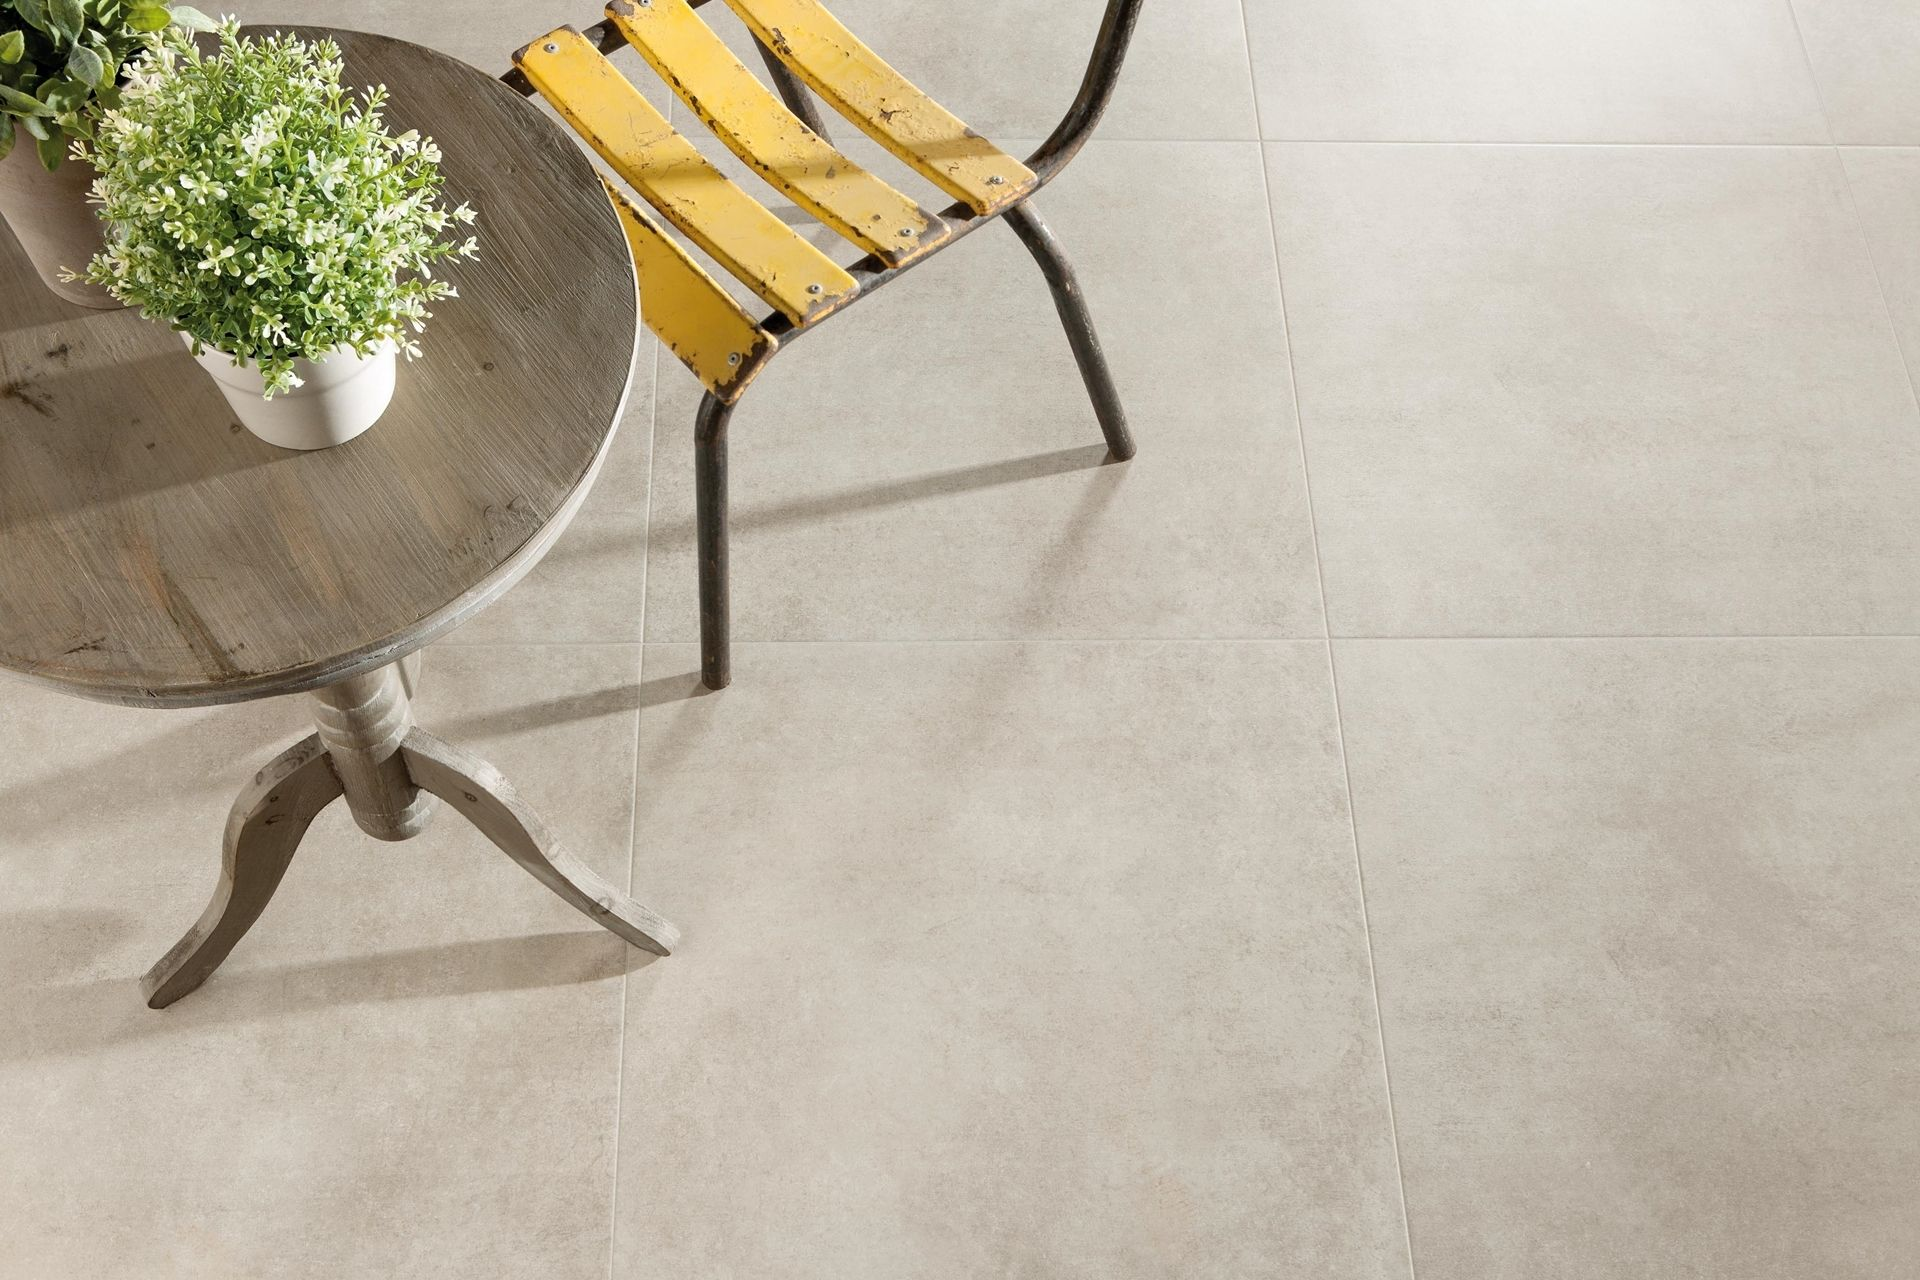 Peronda Brooklyn Beige 615 X 615mm Wall Floor Tile Wall Tiles And Floor Tiles The Tile Experience Tile Floor Flooring Wall Tiles